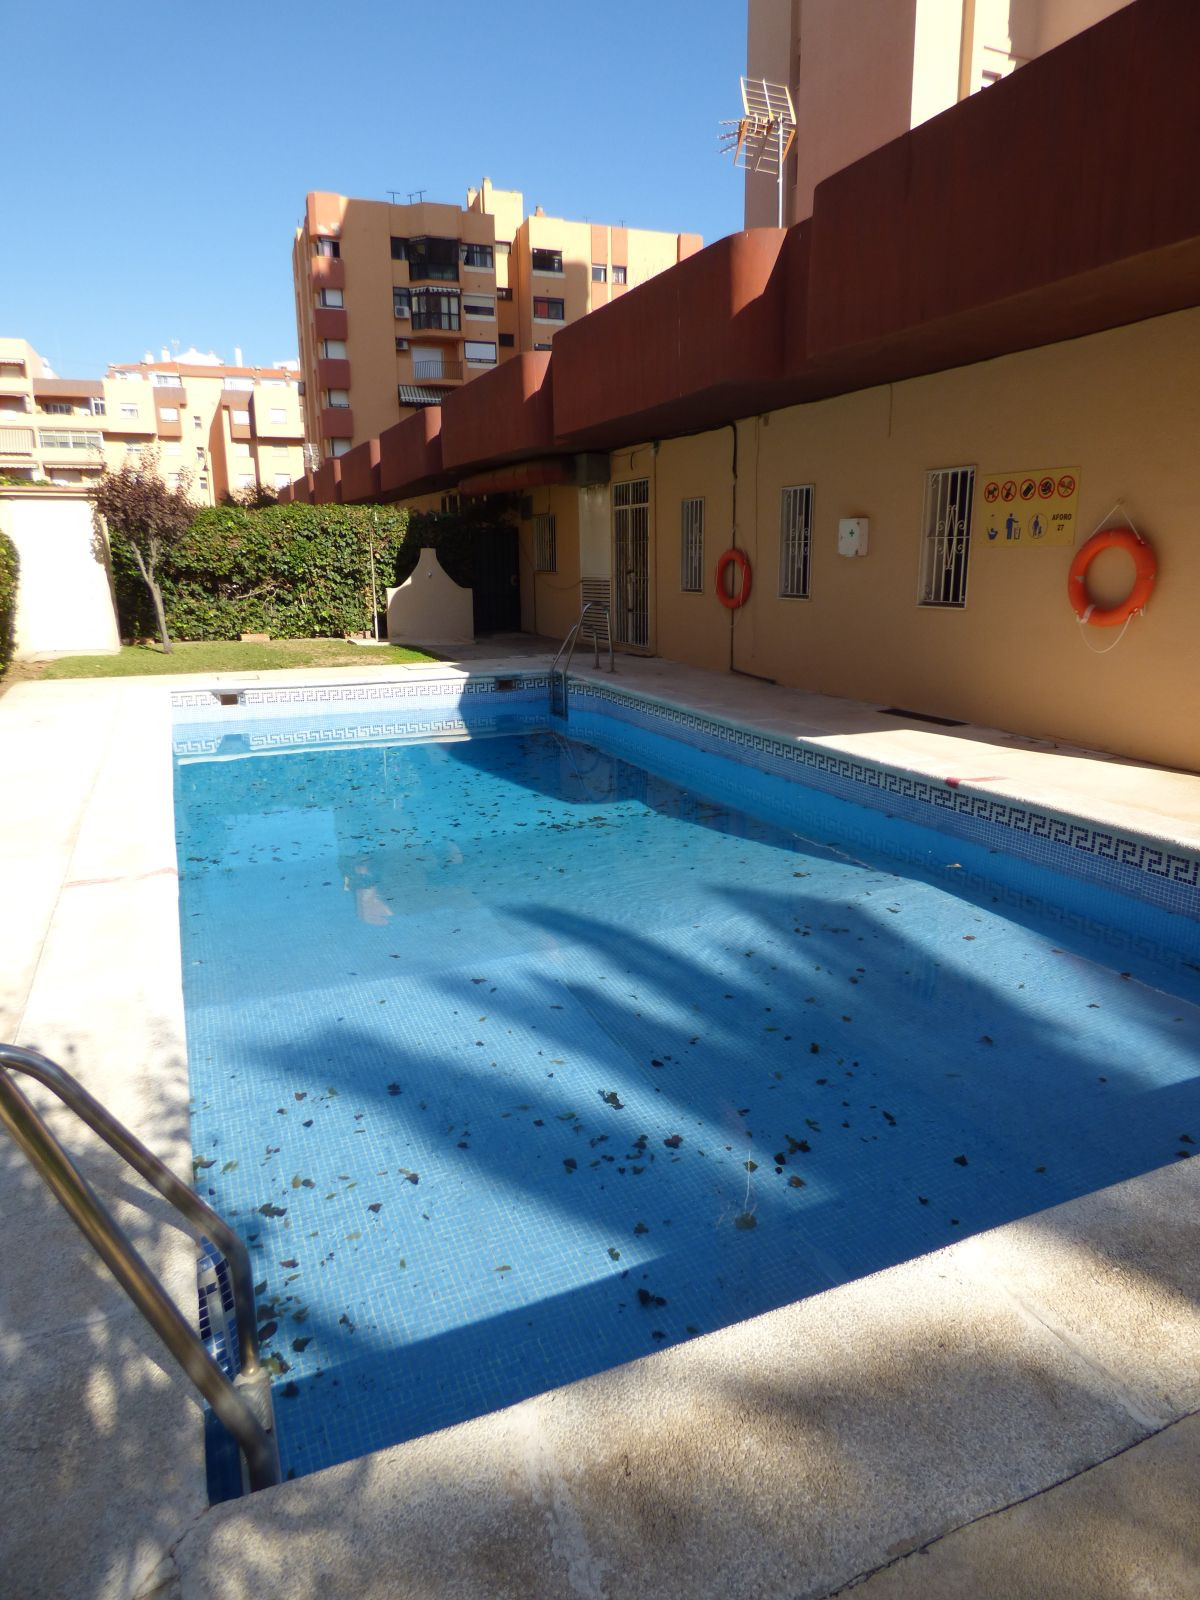 TWO BEDROOM APARTMENT, ONE DOUBLE AND THE OTHER SINGLE, WITH A COMPLETE BATHROOM, SOLON-DINING ROOM,,Spain